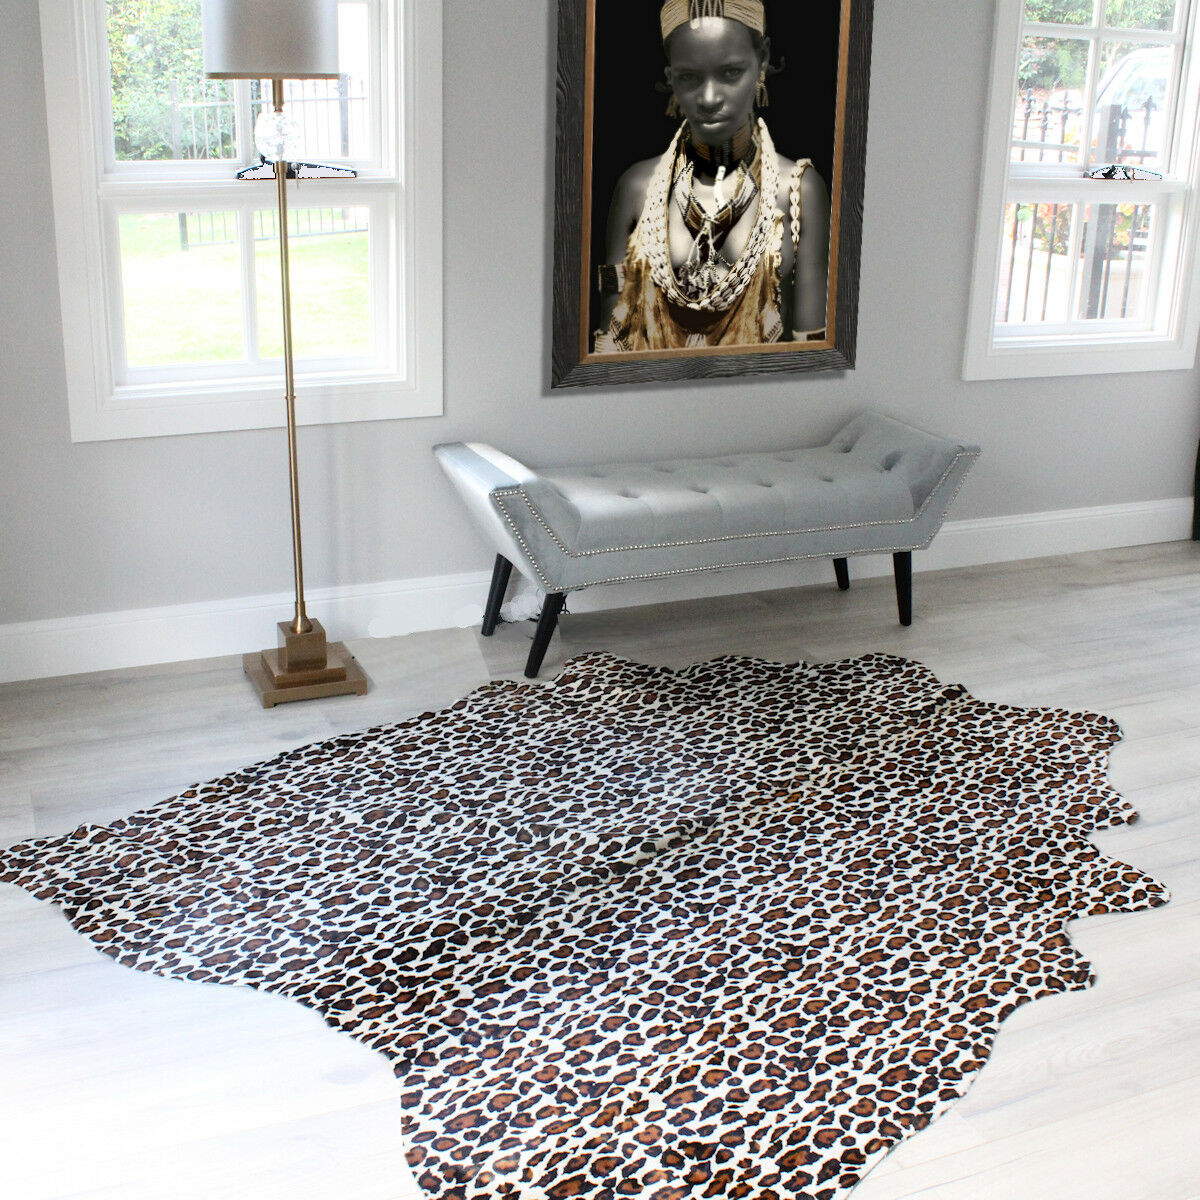 Leopard Cowhide Rug High Quality Cowhide Rug For Sale 634480388756 Ebay